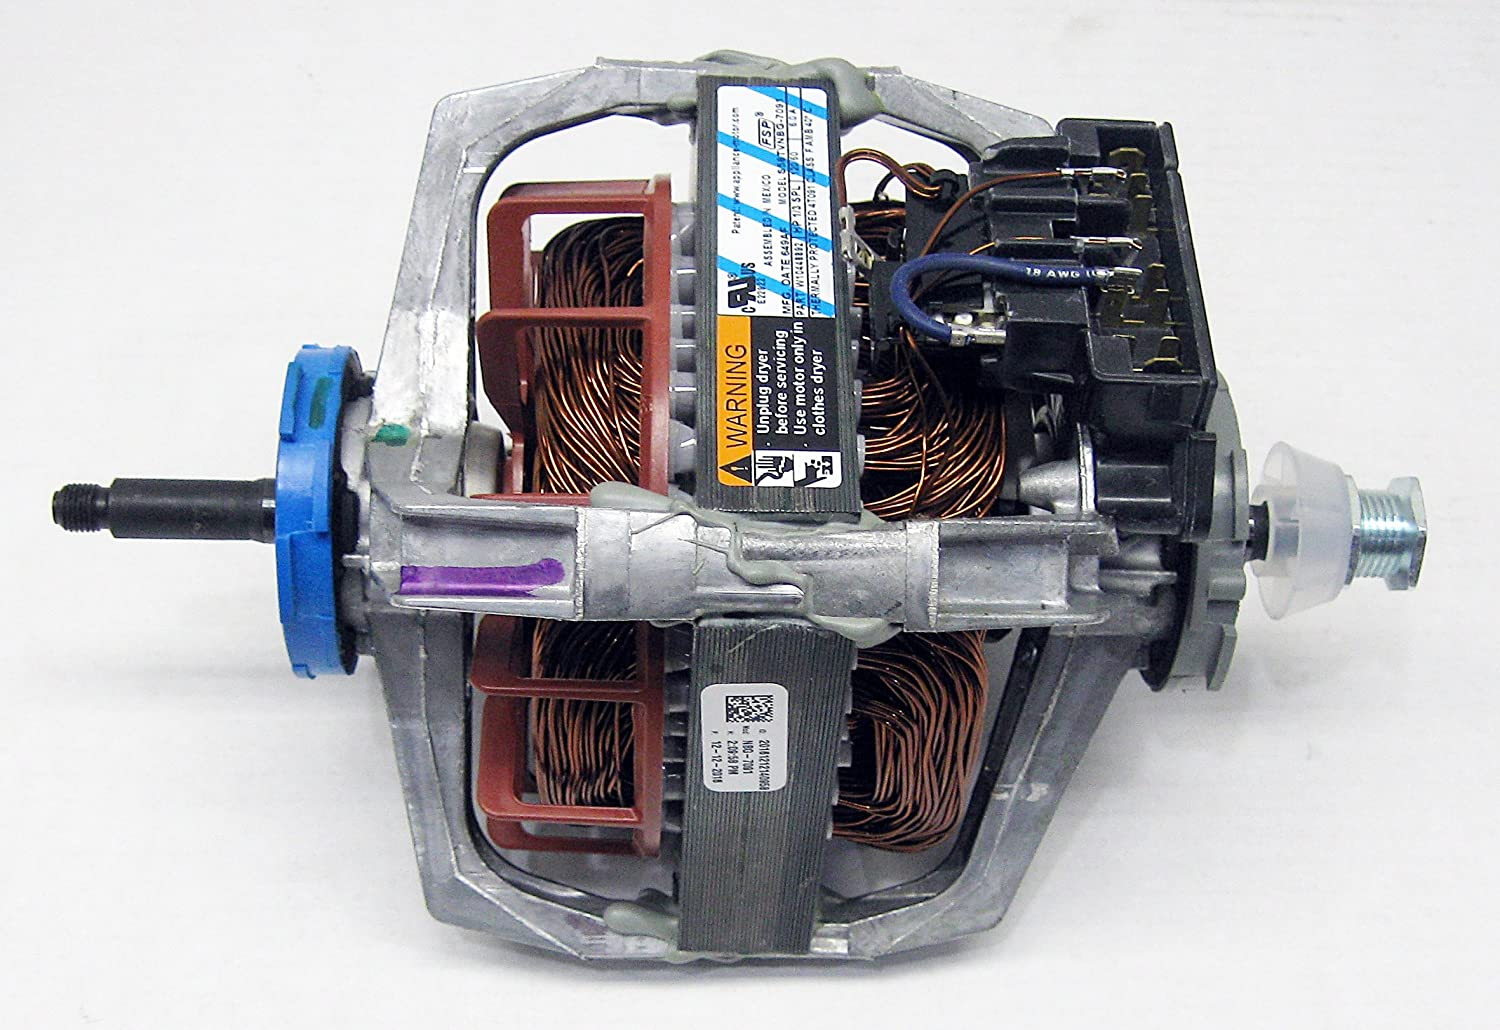 Diagram Dryer Wiring Whirlpool Le6800xp New Replacement Part Drive Motor For Sears Kenmore 8066206 Home Improvement